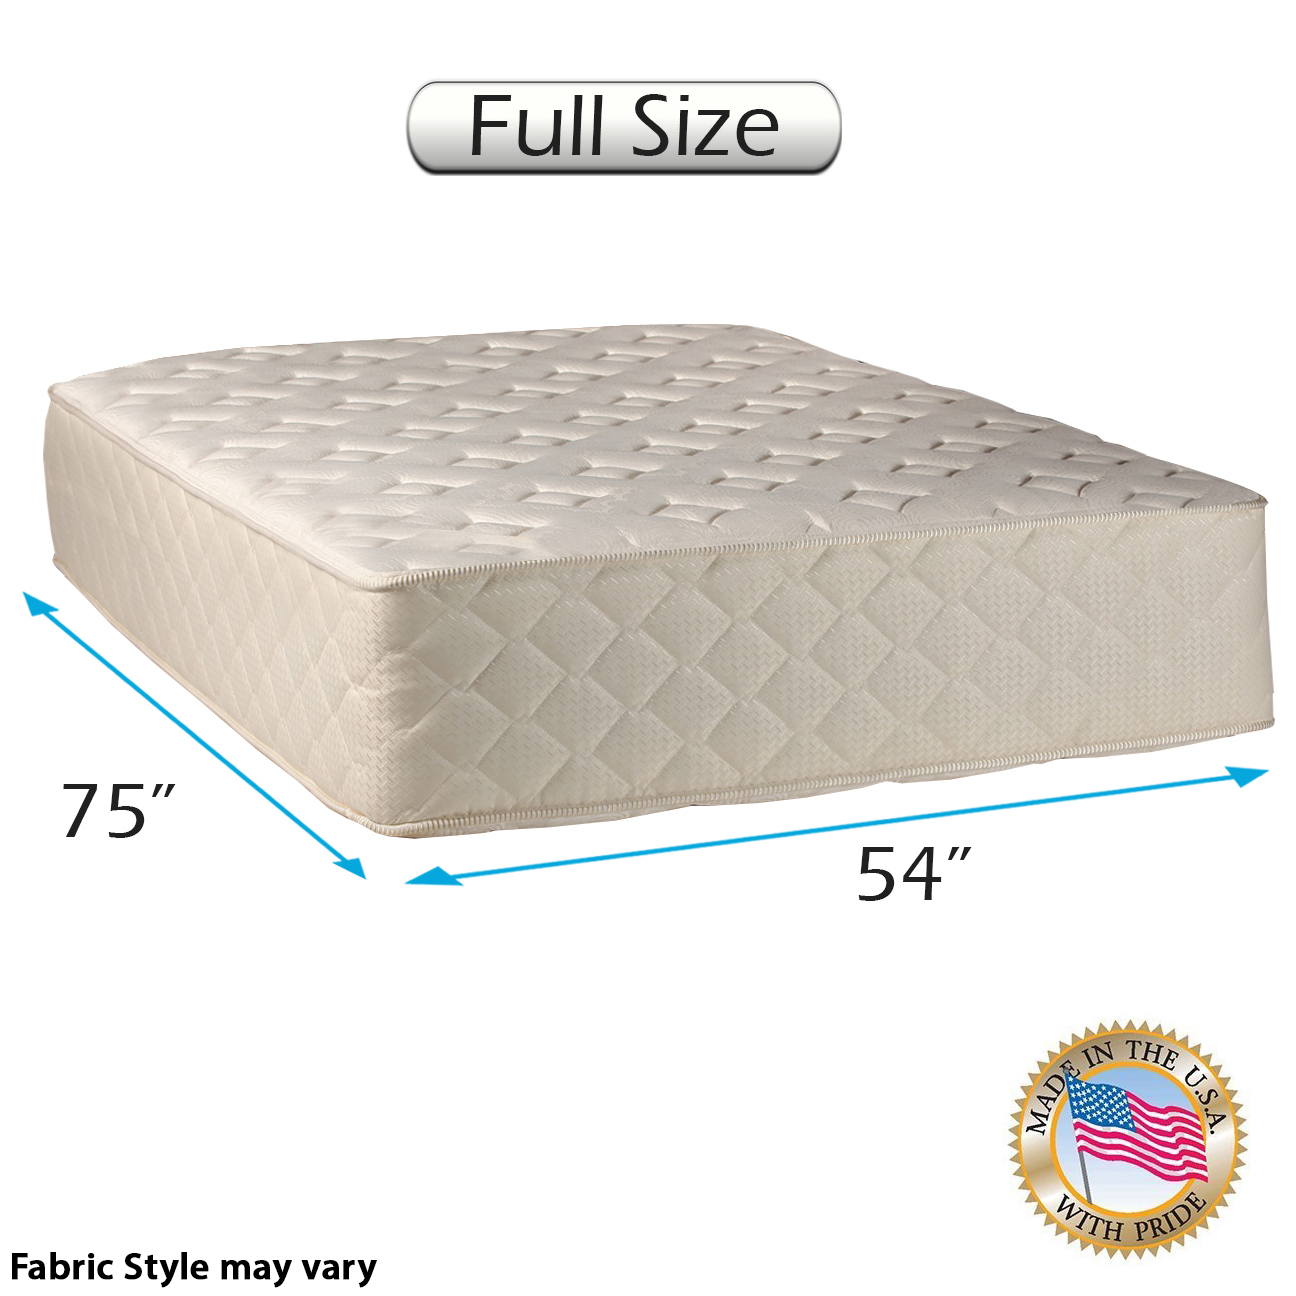 "Highlight Luxury Firm Full Size (54""x75""x14"") Mattress Only - Fully Assembled - Spinal Back Support, Innerspring Coils, Premium edge guards, Longlasting Comfort - By Dream Solutions USA"